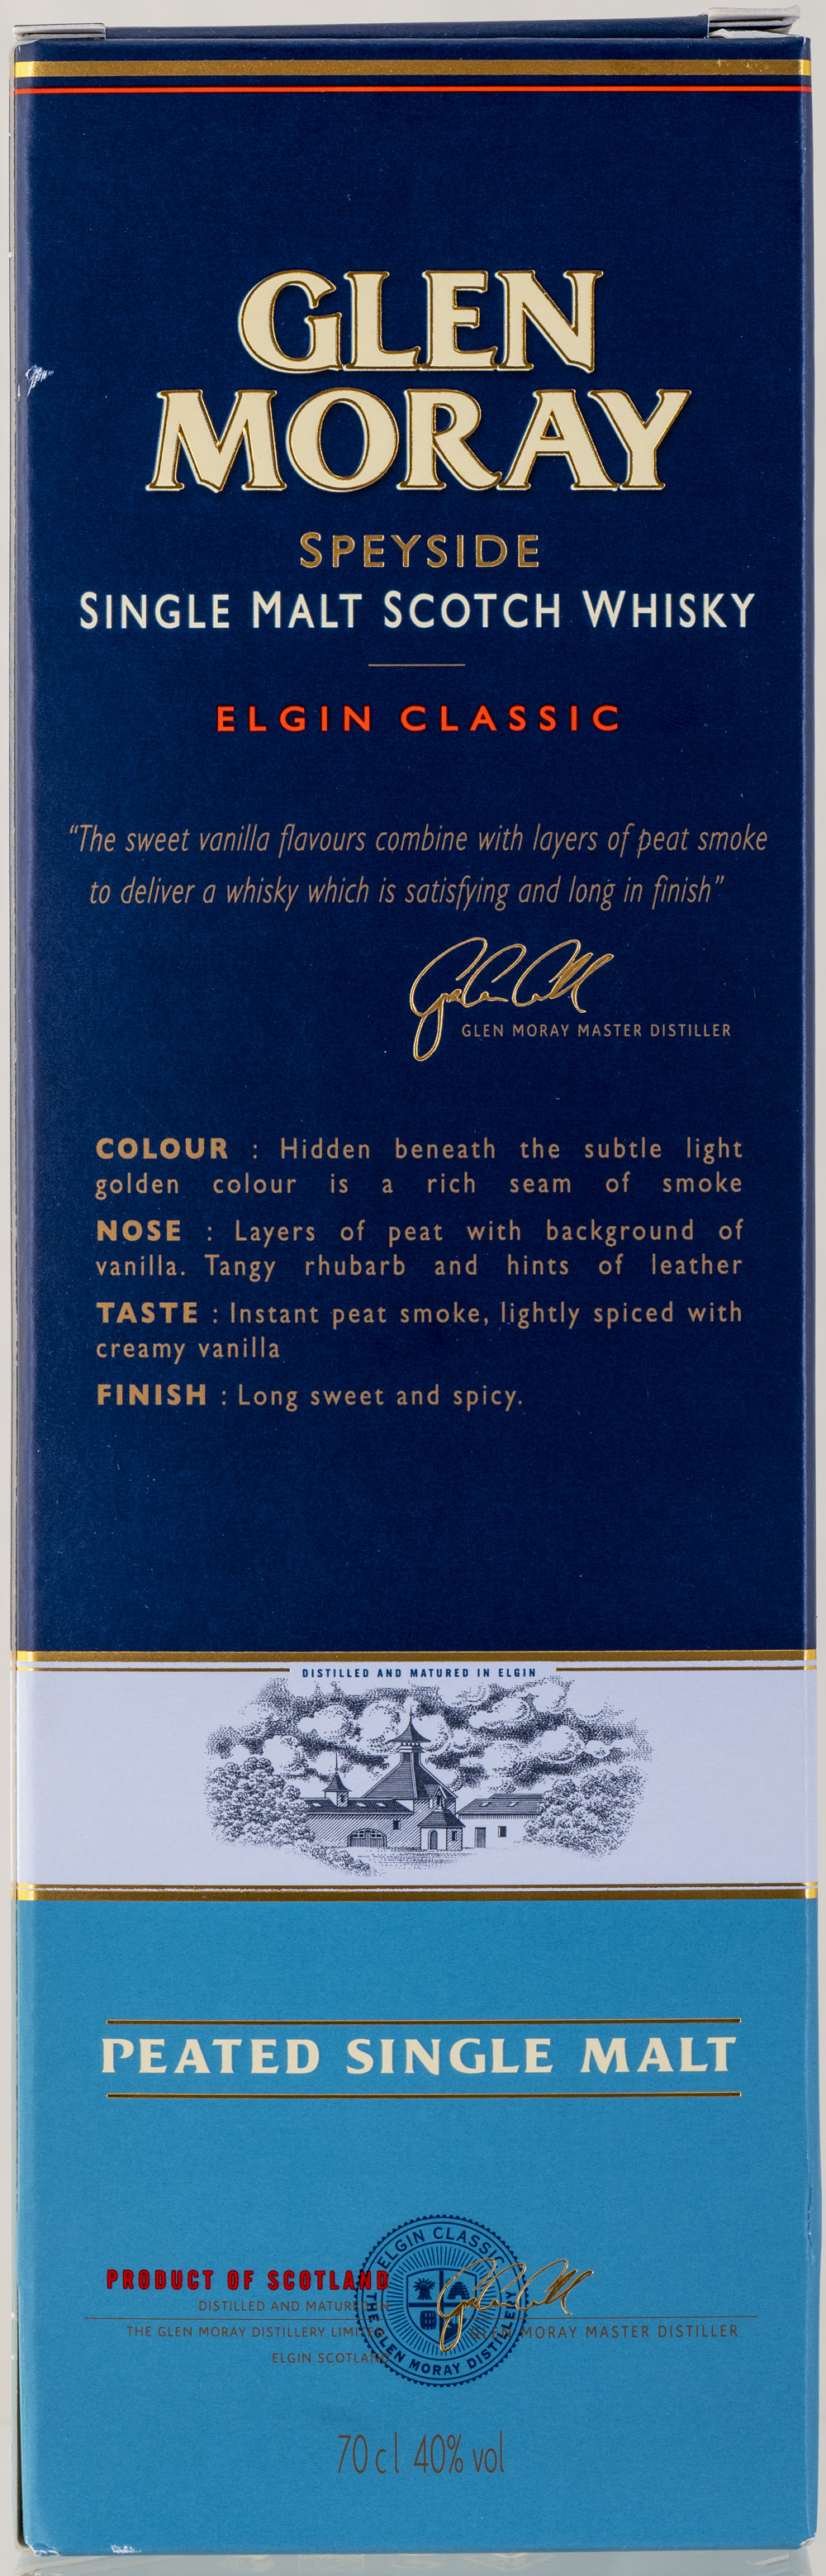 Billede: PHC_2271 - Glen Moray - Elgin Classic Peated - box back.jpg